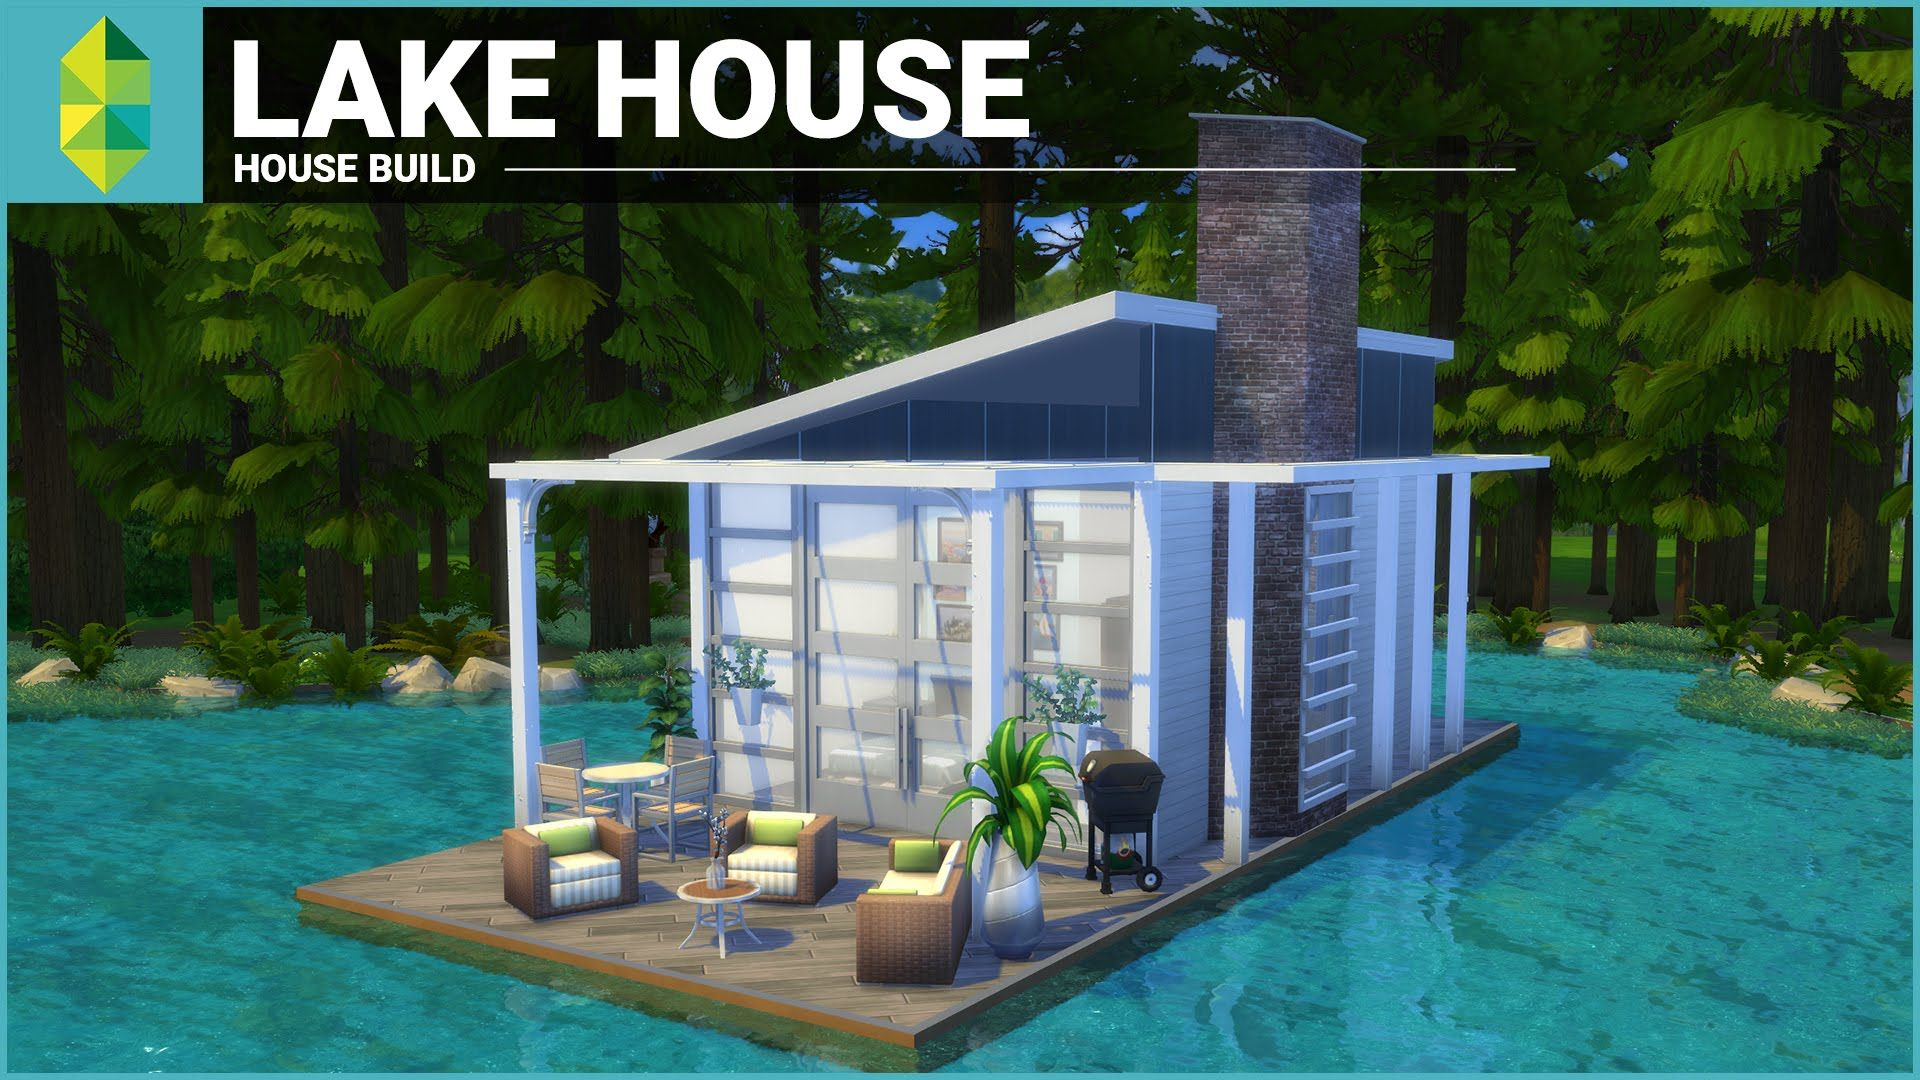 the sims 4 house building lake house tiny 4x6 grid modern